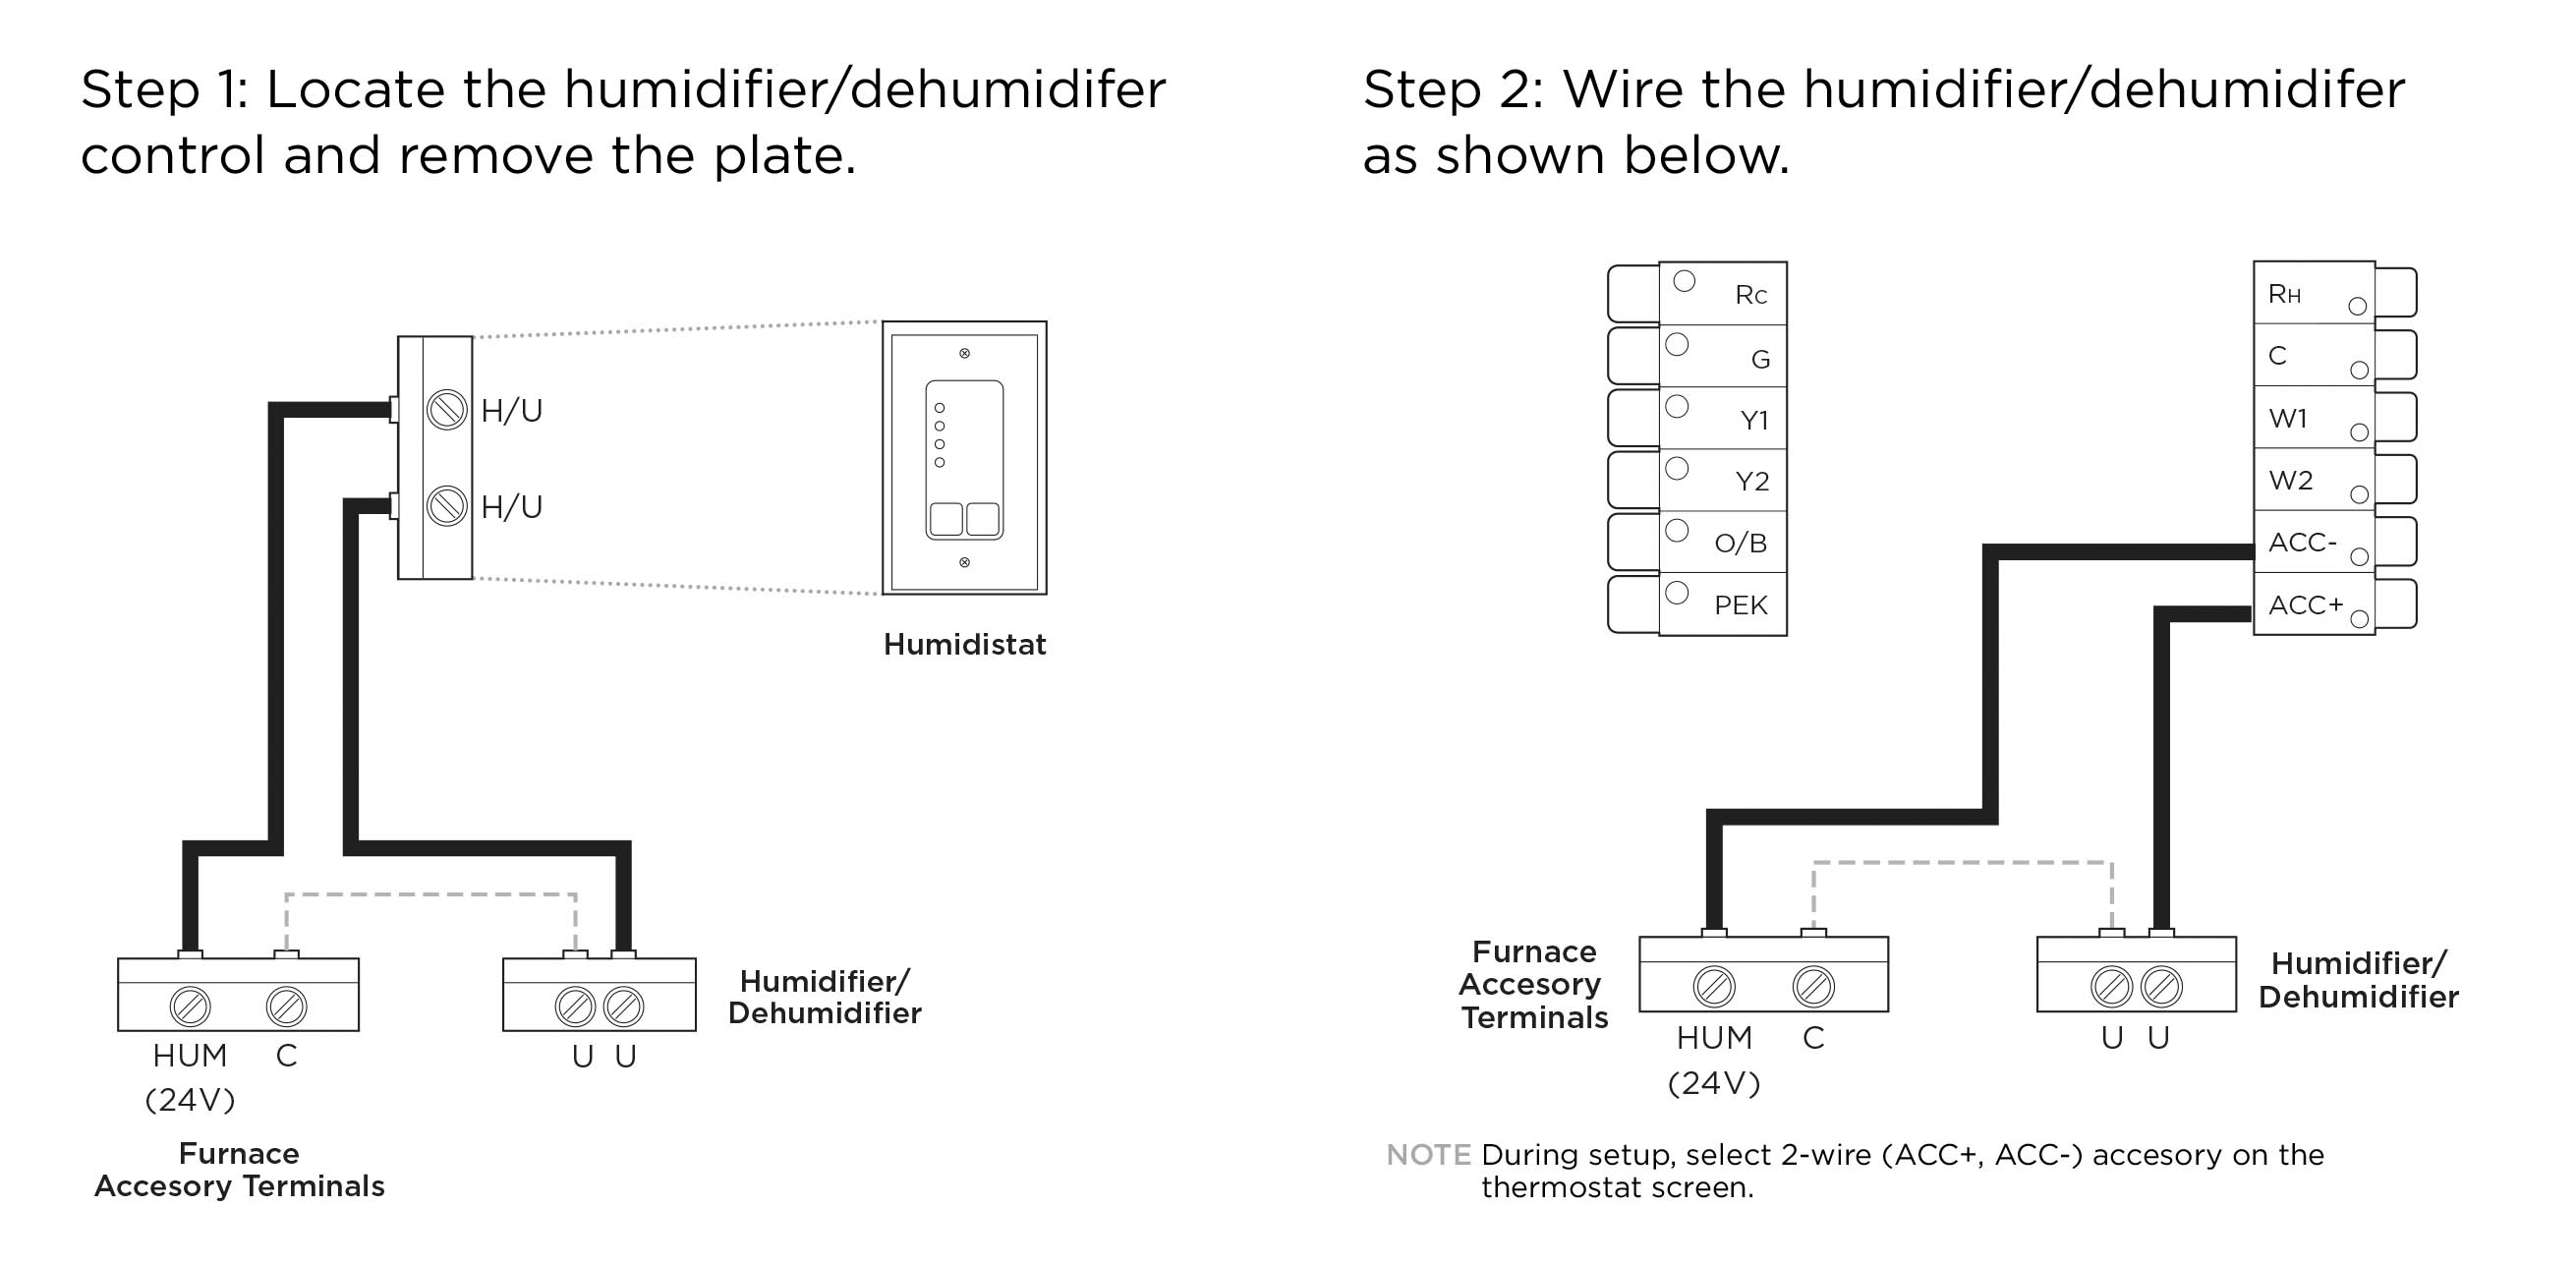 Furnace wire humidifier to How to